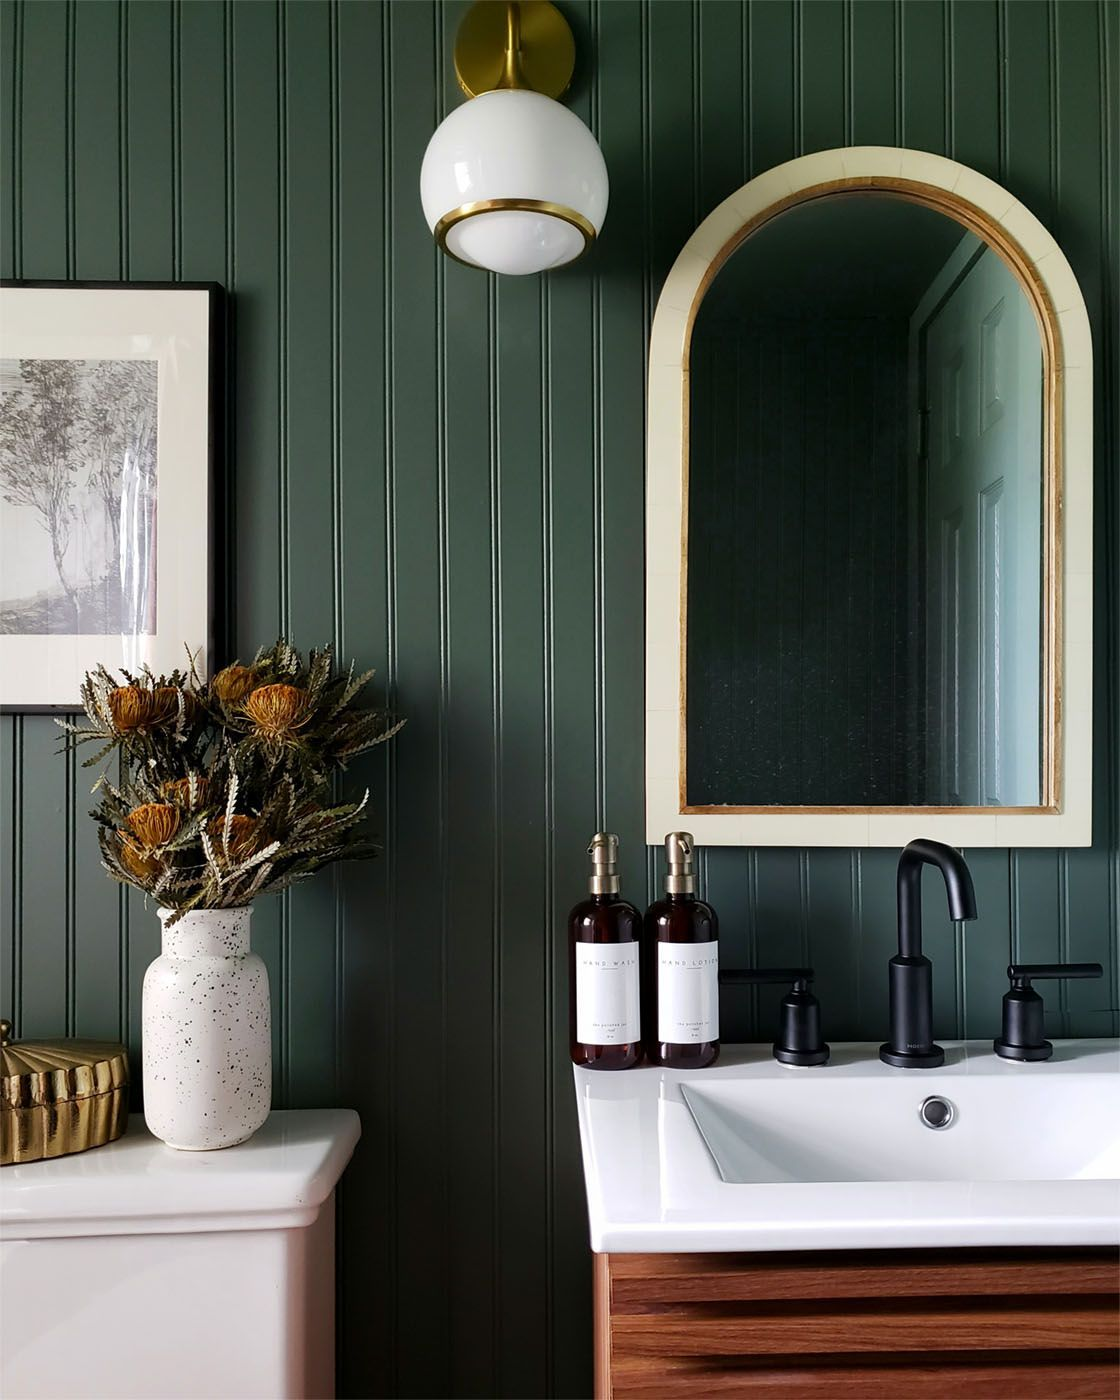 Bold Ideas For A Small Bathroom Remodel Clare In 2020 Small Bathroom Remodel Small Bathroom Paint Small Bathroom Paint Colors